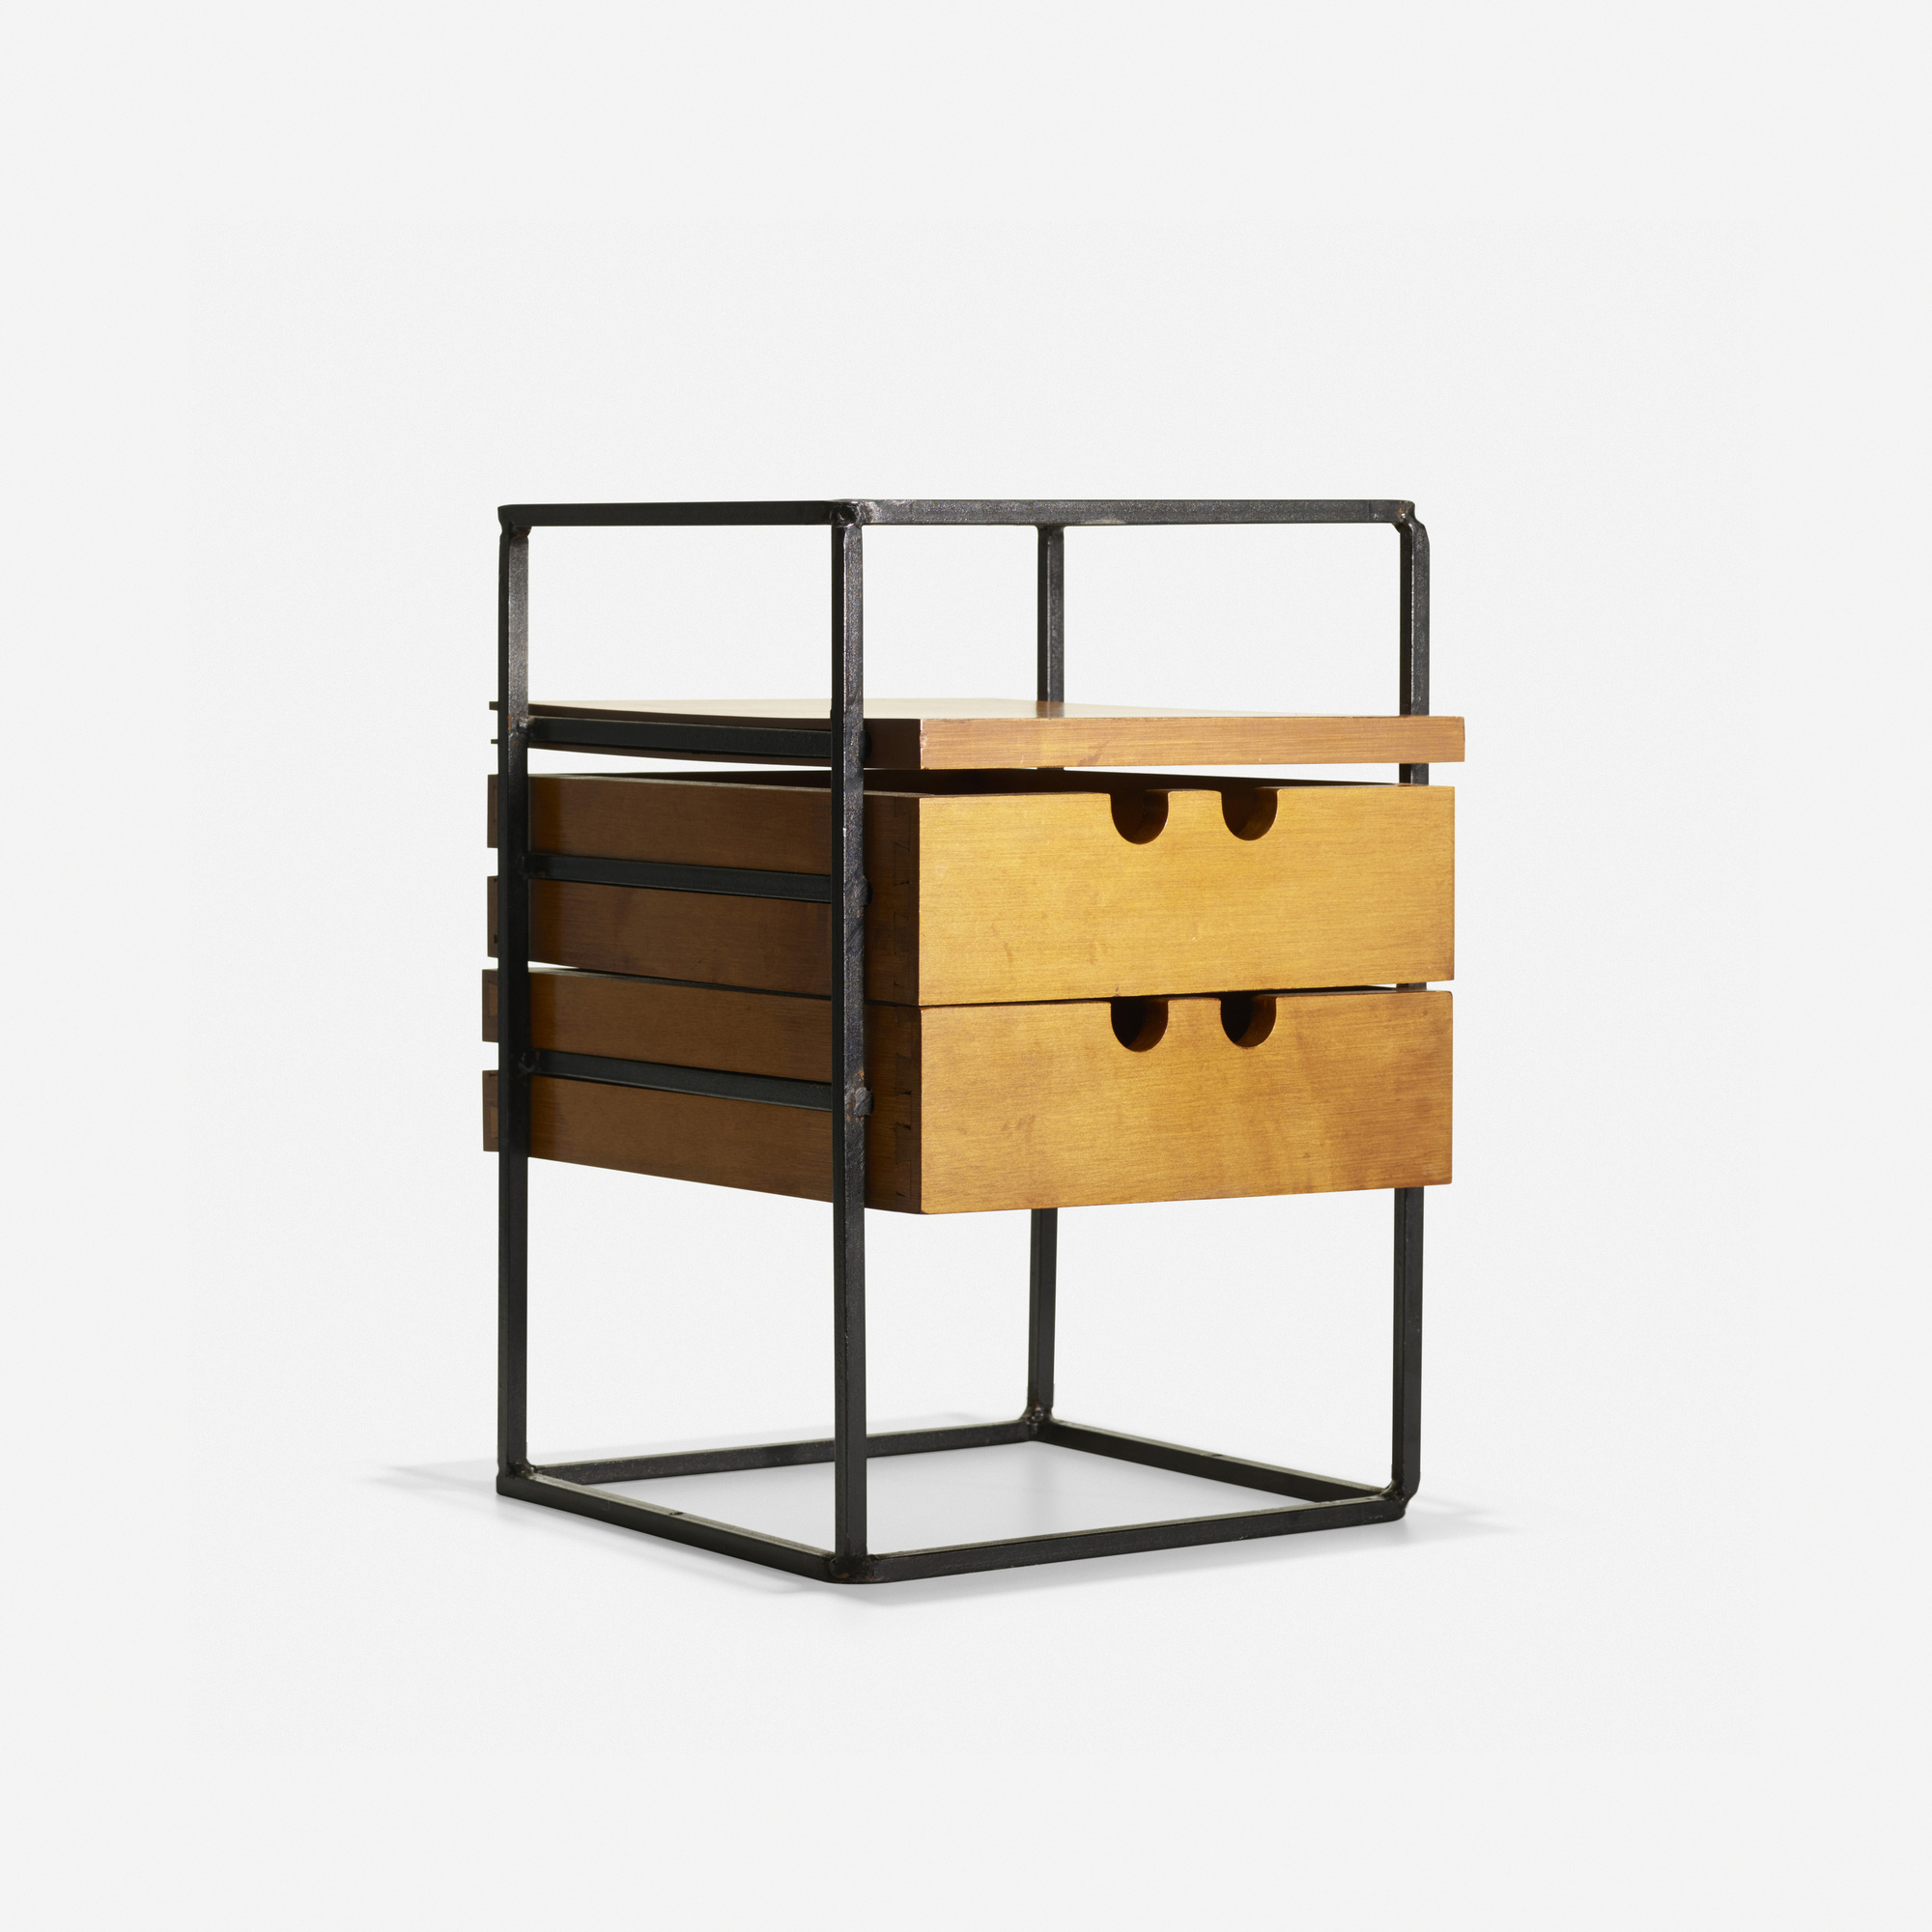 118: Paul McCobb / Planner Group desk organizer (1 of 3)